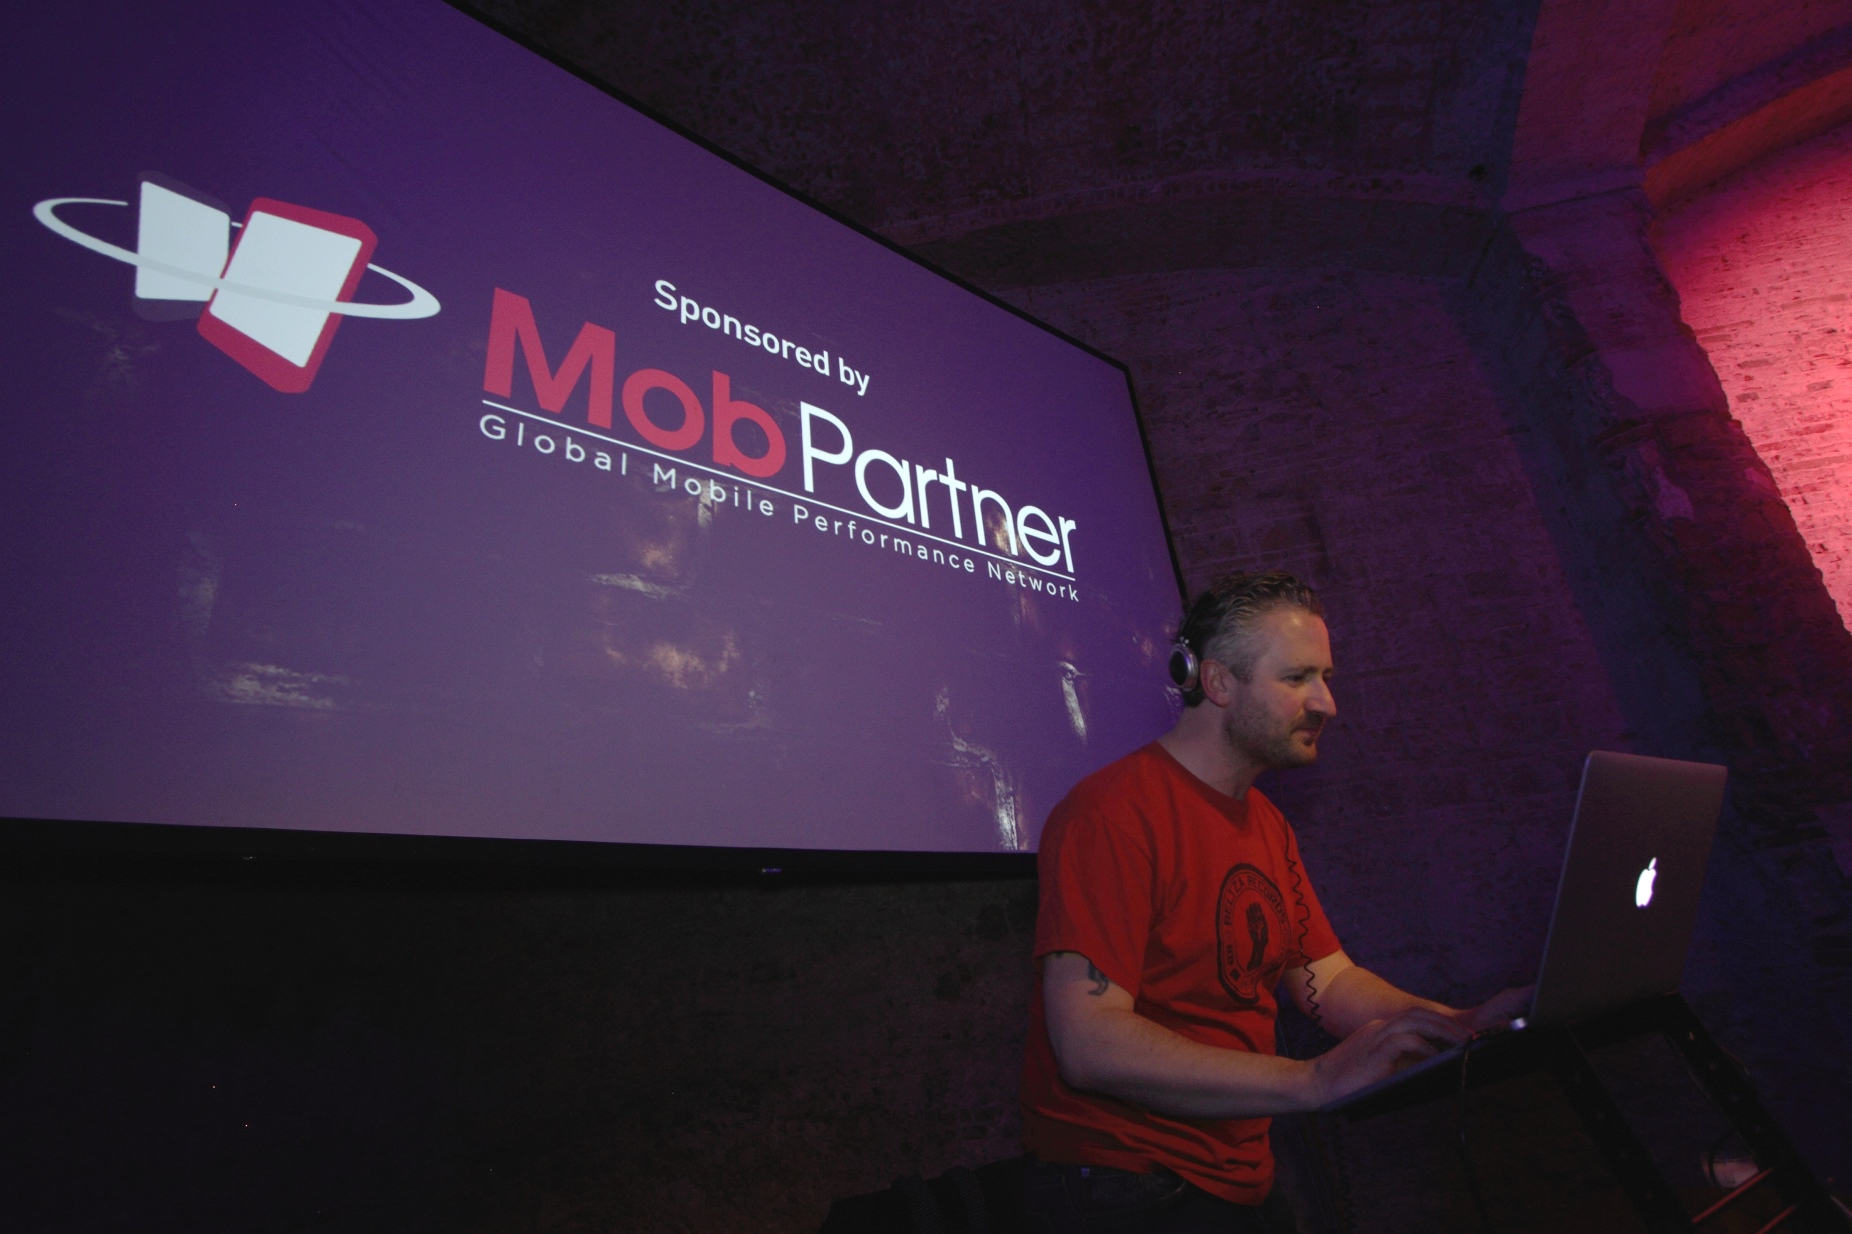 Check Out the Photos from Our Mobile Marketing Mixer Party